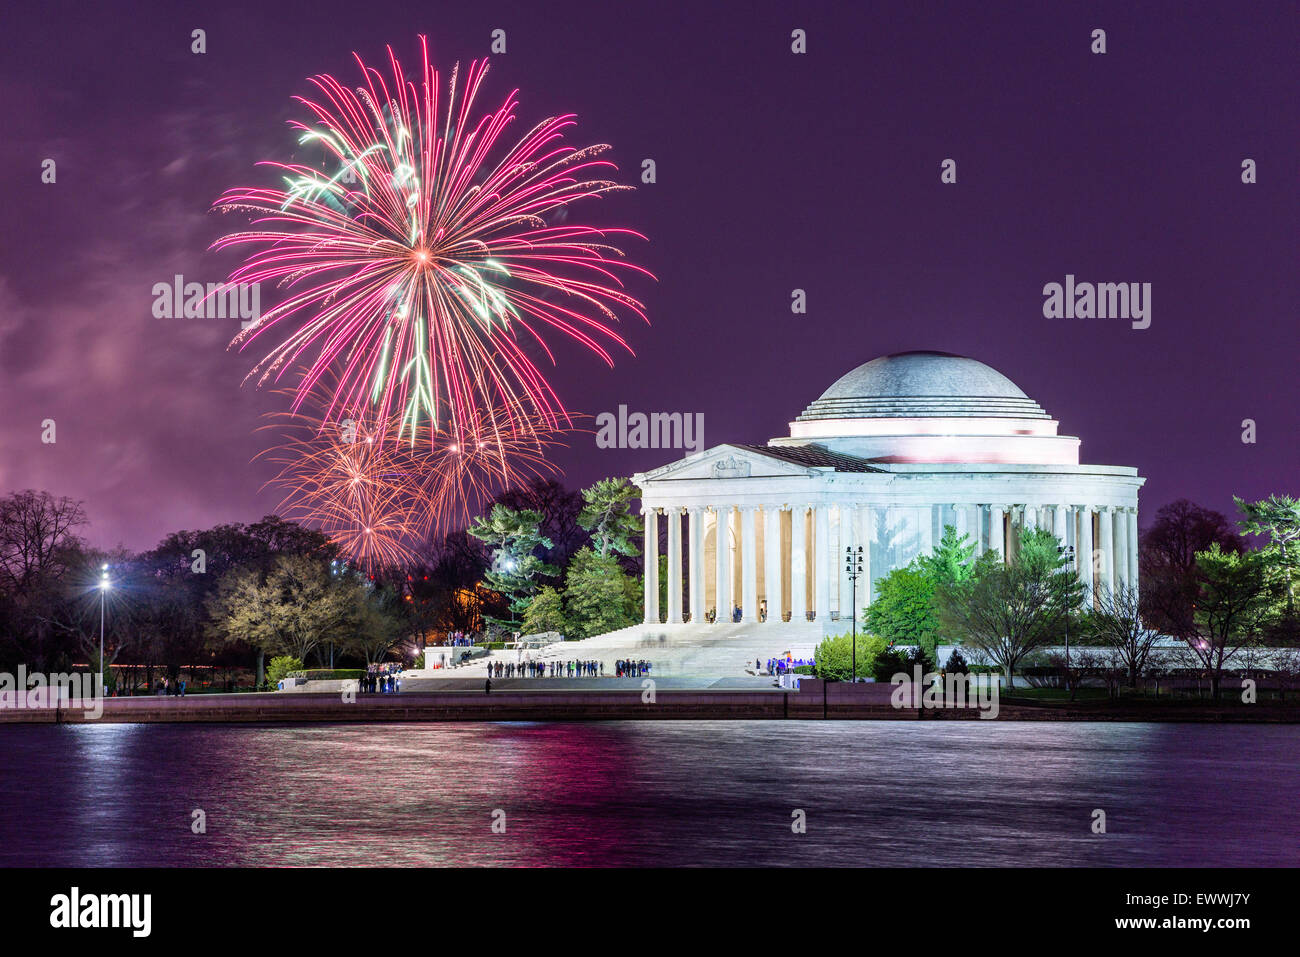 Washington DC, USA tidal basin fireworks. - Stock Image